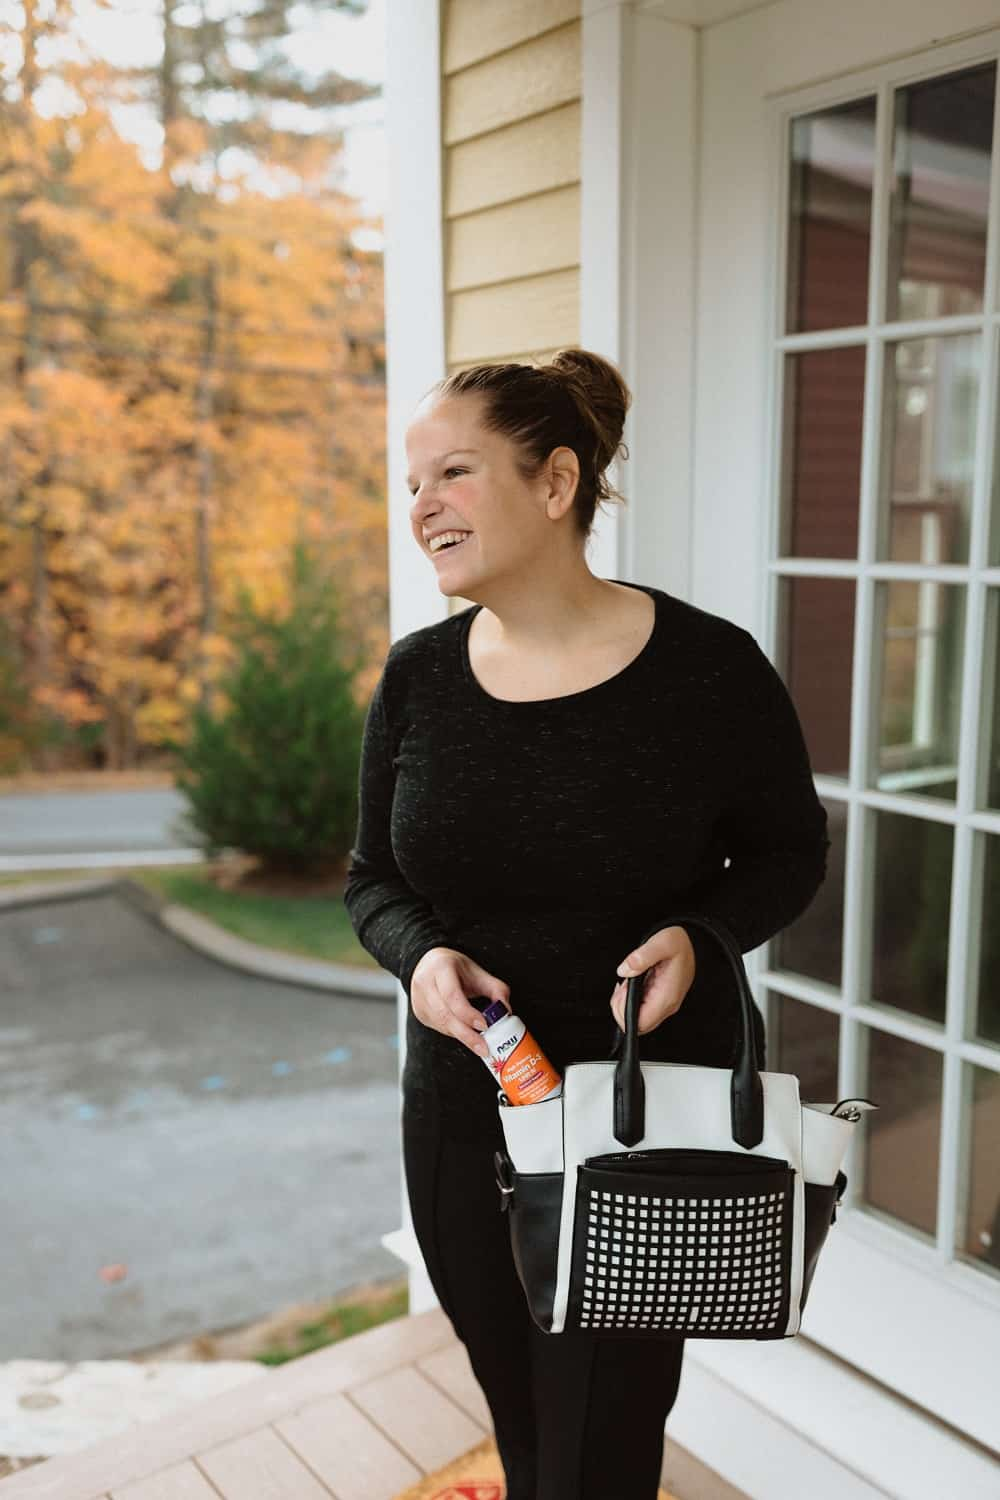 a woman taking a bottle of Vitamin D out of her purse